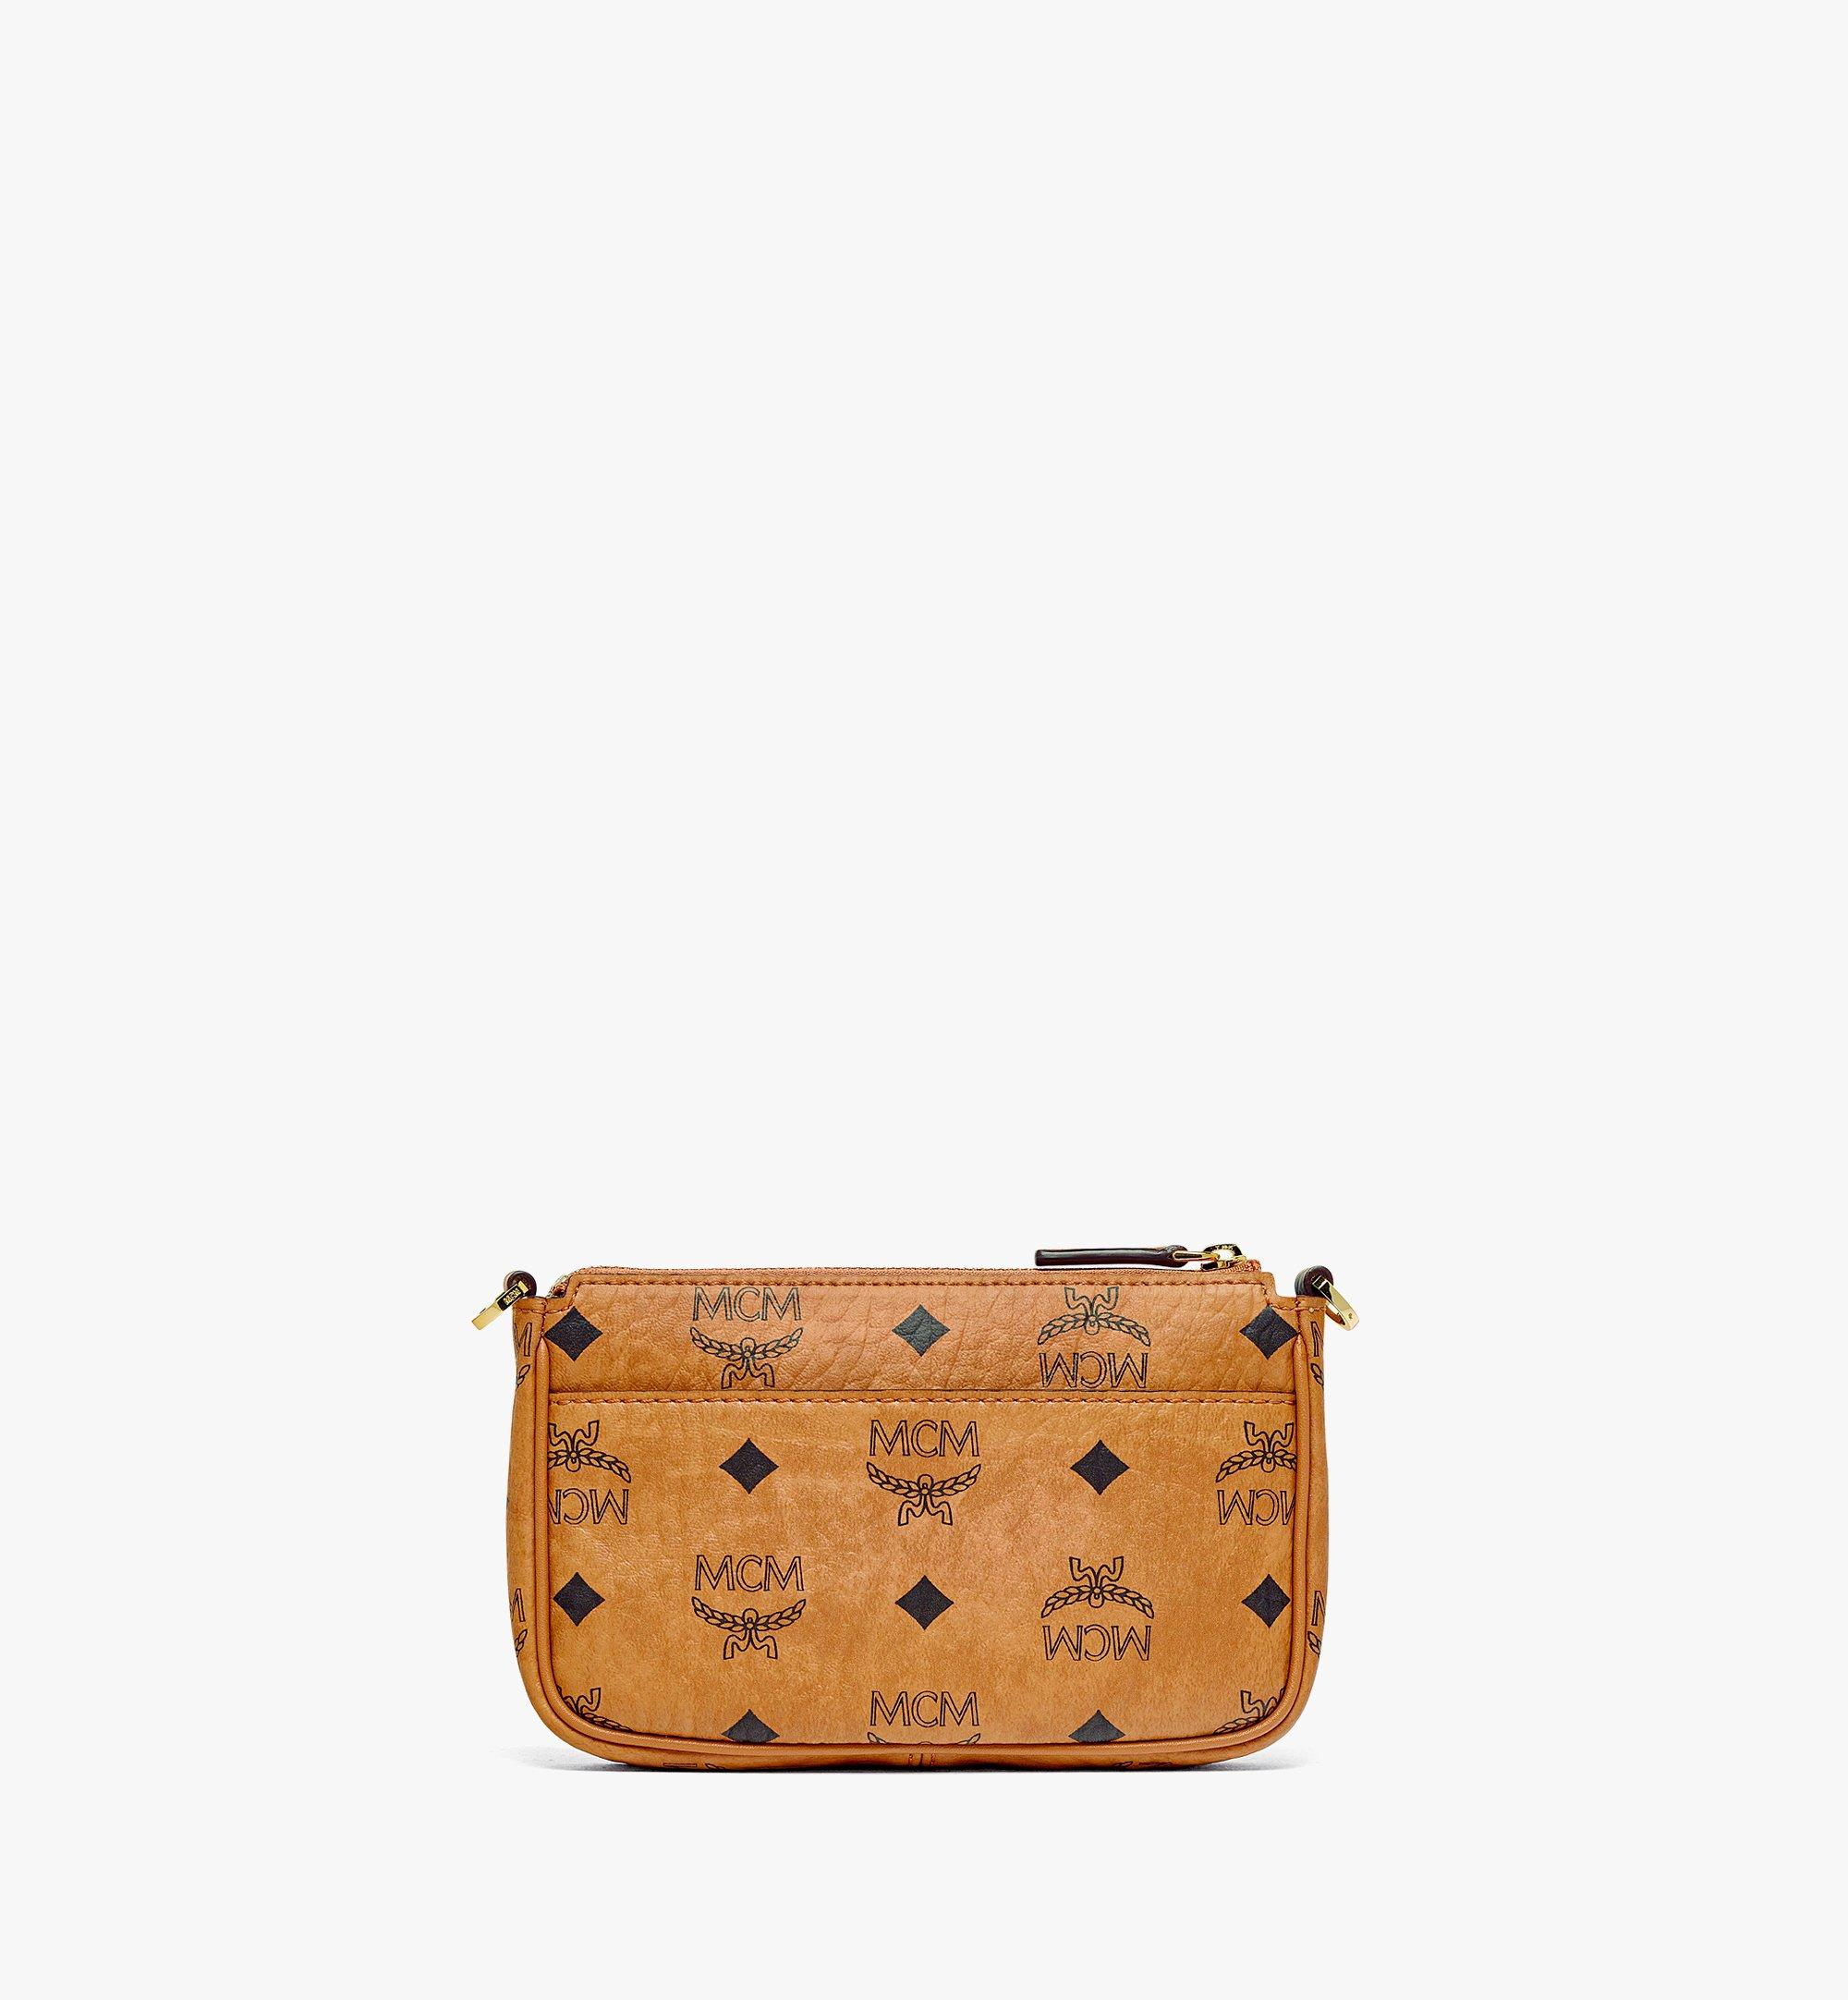 MCM MCM Zoo Parrot Crossbody Pouch in Visetos Cognac MYZBSXL02CO001 Alternate View 3